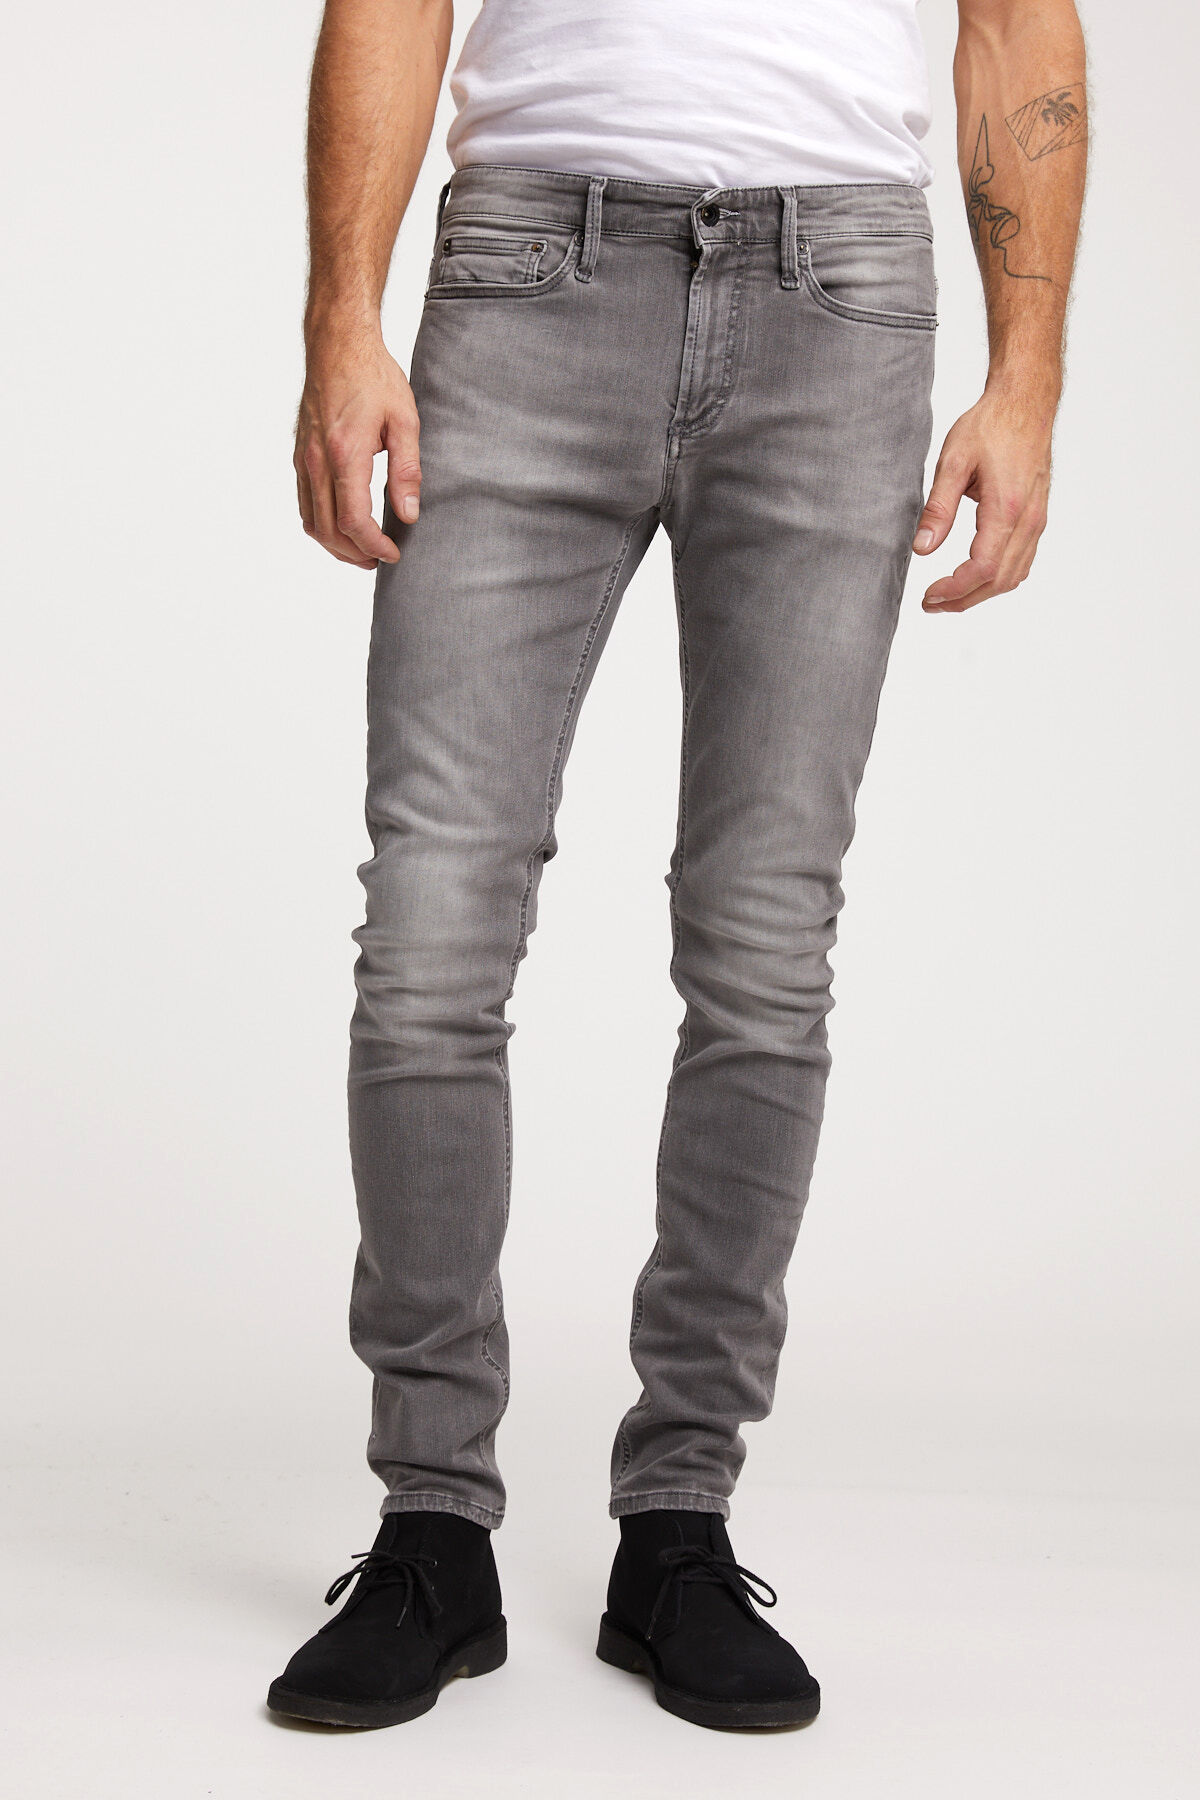 BOLT ZIP Faded Grey Denim - Skinny Fit